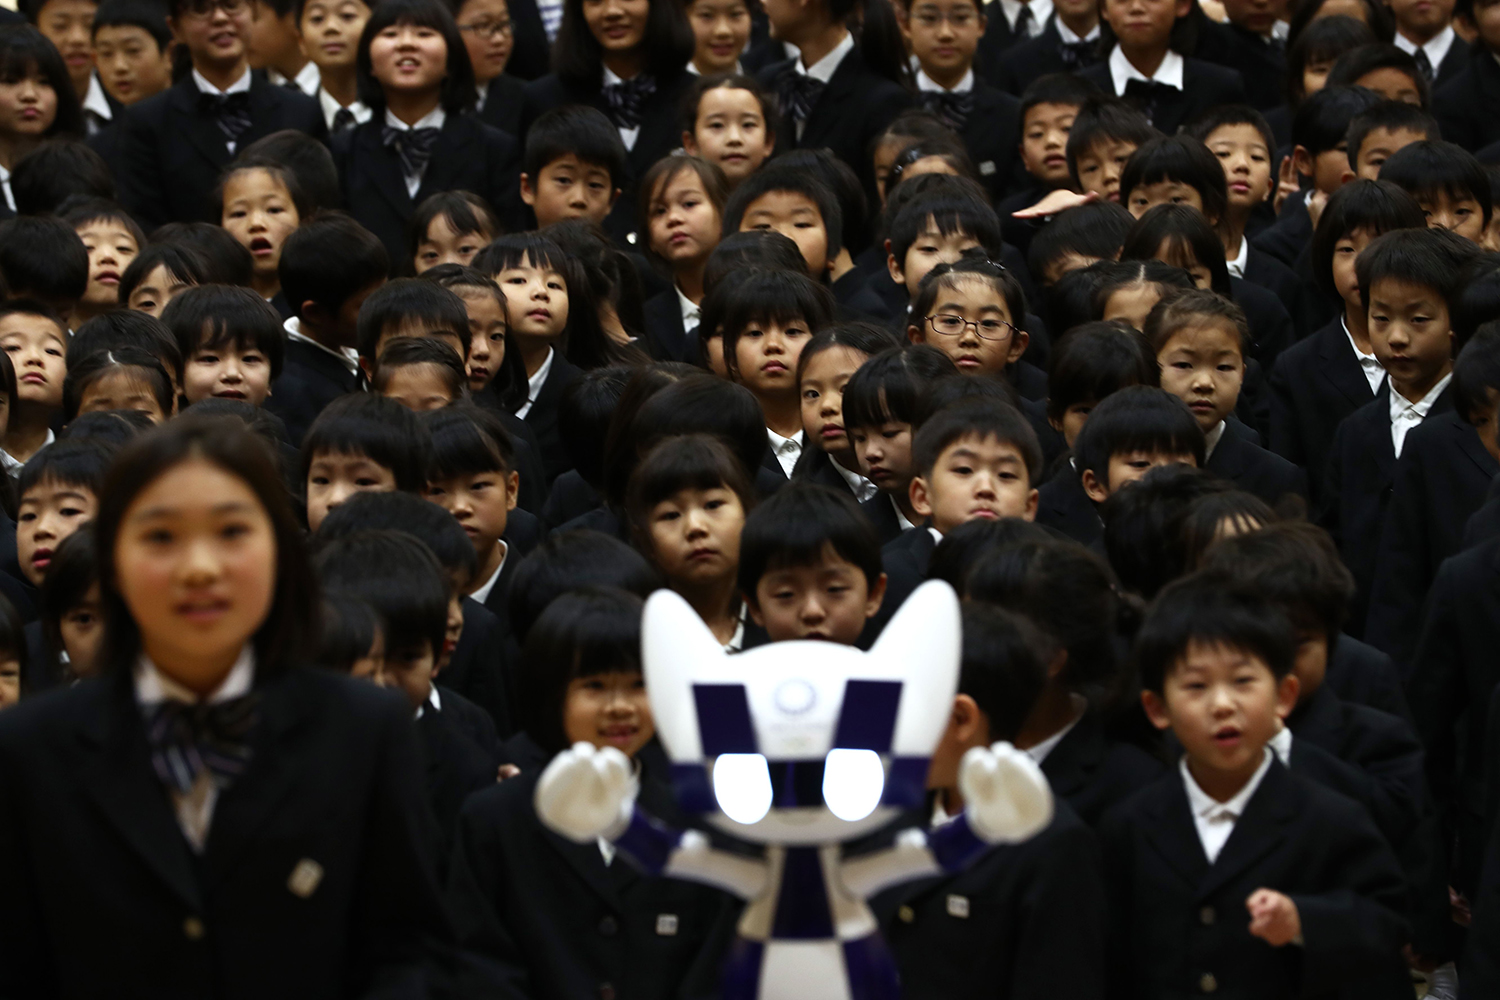 Schoolchildren pose for a picture with Miraitowa, the robot-like mascot for the Tokyo 2020 Olympic Games, during a ceremony at Hoyonomori elementary school in Tokyo on Nov. 18. BEHROUZ MEHRI/AFP via Getty Images